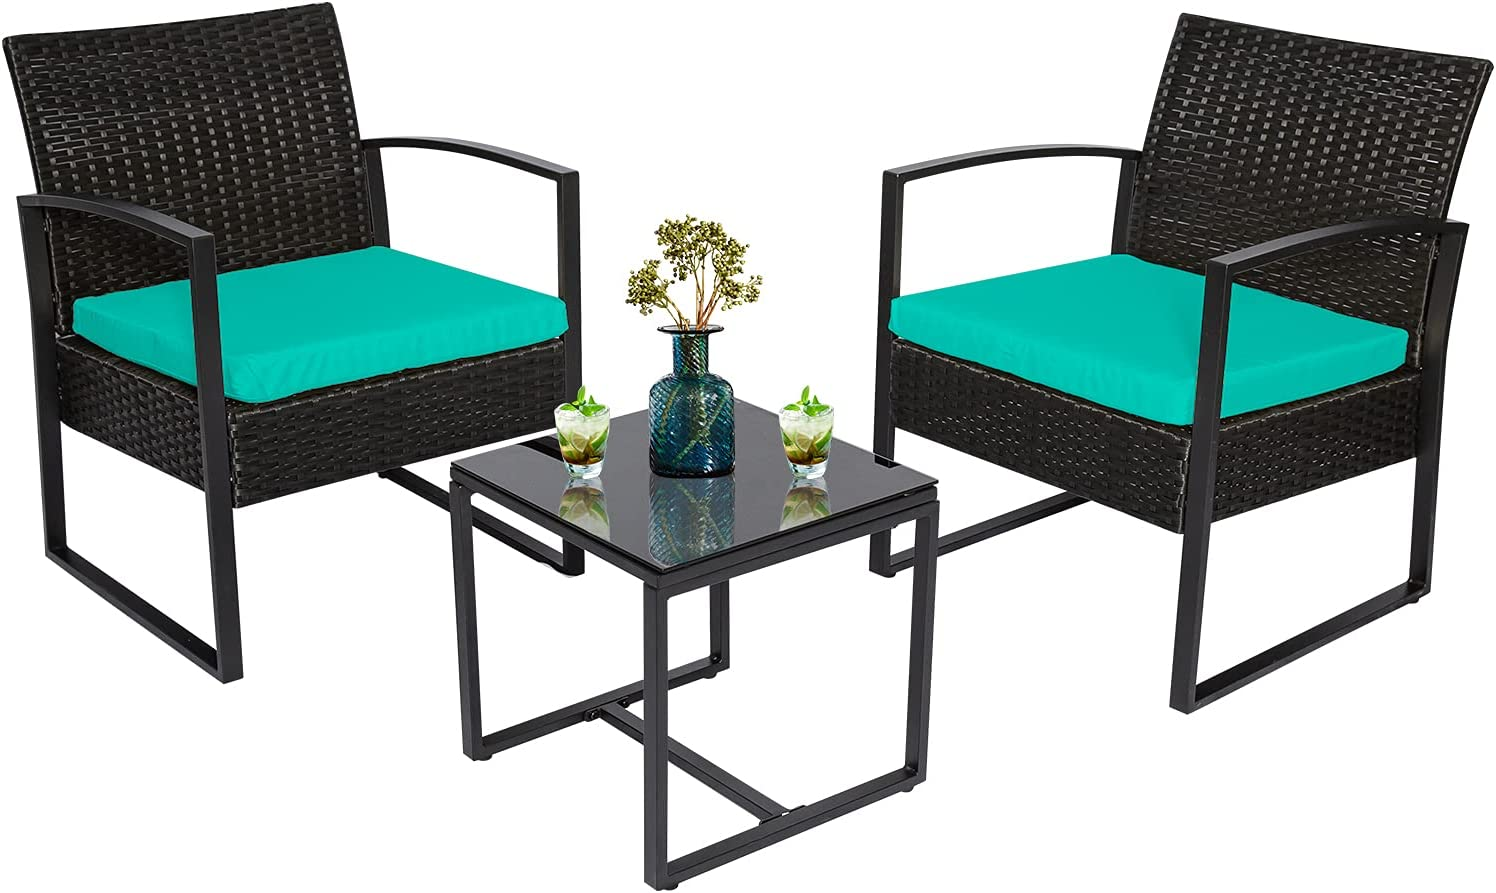 3 Piece Outdoor Patio Furniture Set Ranking TOP13 of Ranking TOP11 Table Glass Wicke with 2